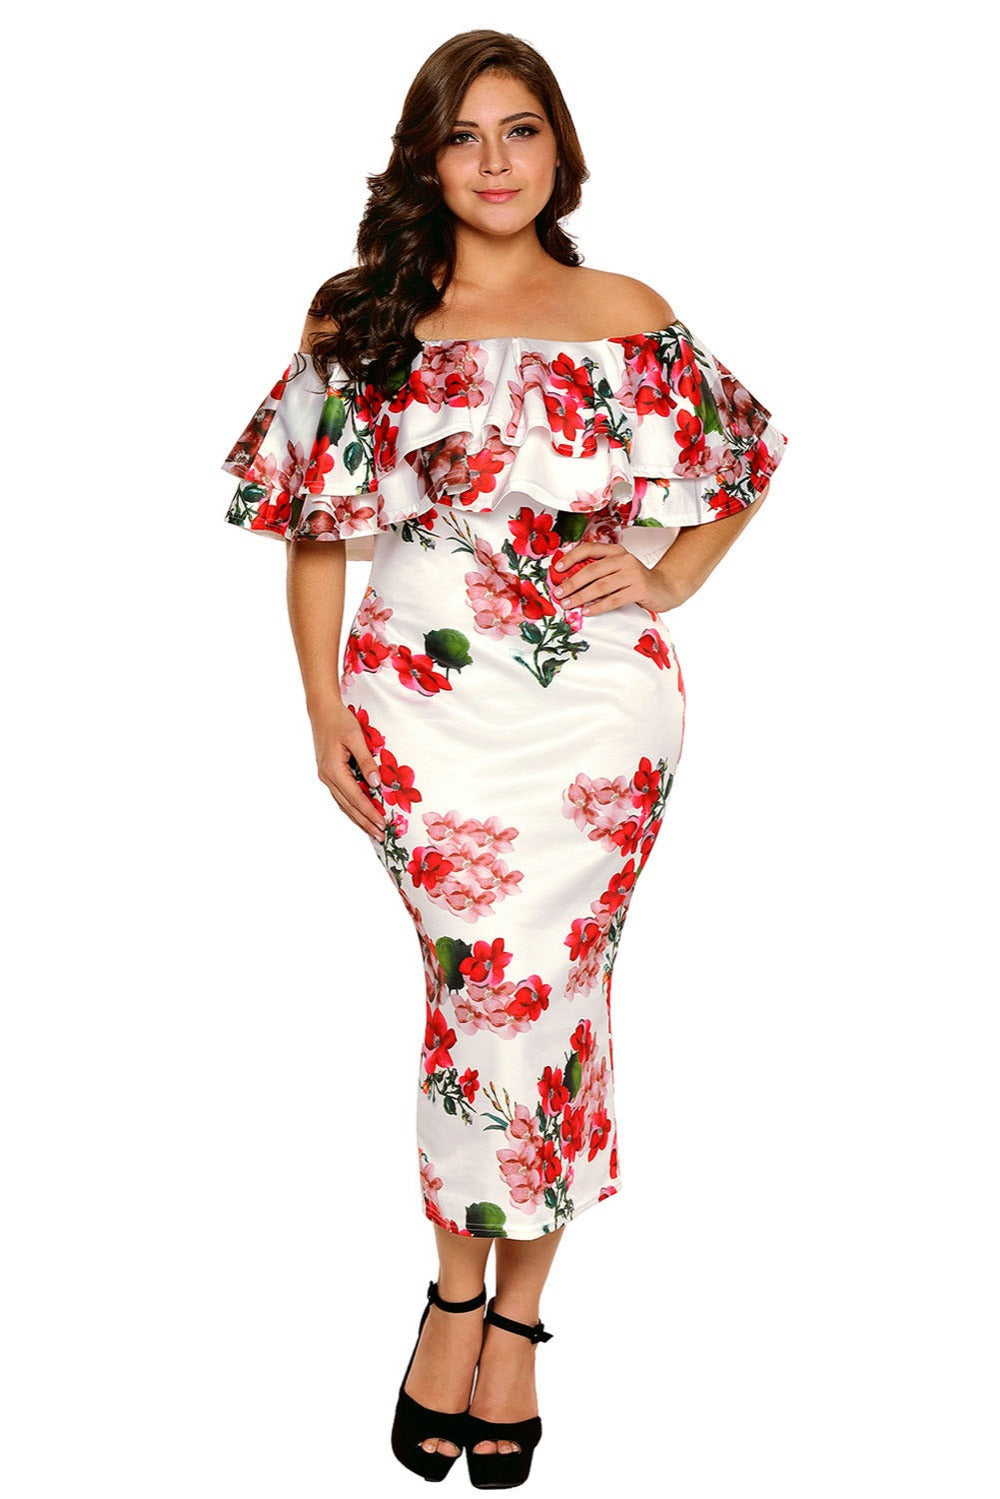 Club Dresses | Club Outfits | Party Dresses plus size, Plus Size Floral Layered Ruffle Off Shoulder Sexy Elegant Women Dress - Clubbing Love